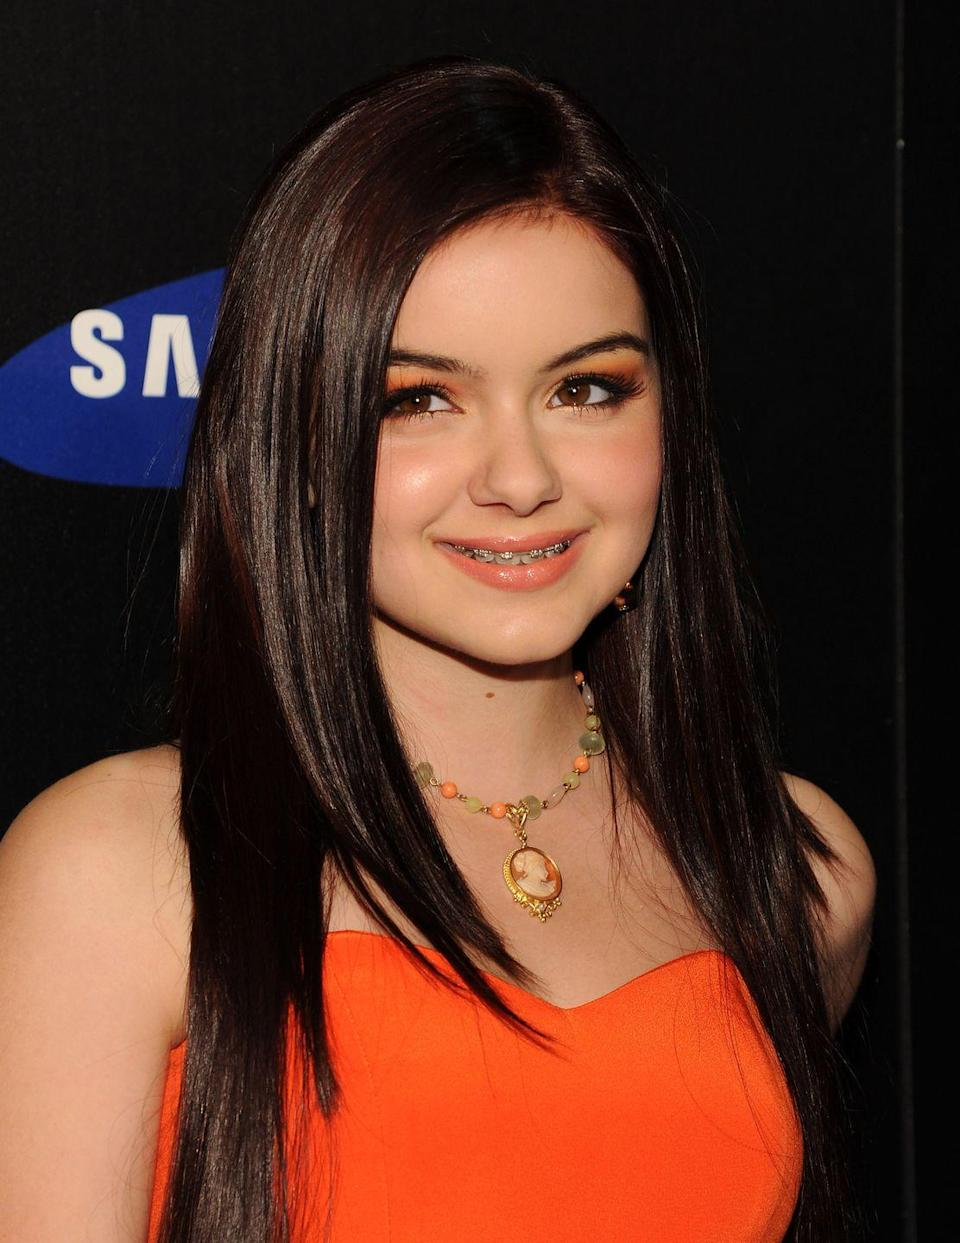 """<p><em>Modern Family </em>star Ariel Winter had braces for season two of the hit sitcom. Ariel said growing up on the show wasn't always the easiest, and the year she had braces was the worst. """"The year I had braces was an awful year for me,"""" <a href=""""https://www.cinemablend.com/television/2489745/ariel-winter-explains-why-growing-up-on-modern-family-was-difficult-and-awful"""" rel=""""nofollow noopener"""" target=""""_blank"""" data-ylk=""""slk:according to Cinemablend"""" class=""""link rapid-noclick-resp"""">according to Cinemablend</a>. """"I went through puberty over the summer. I had other things. It was an awful year for me.""""</p>"""